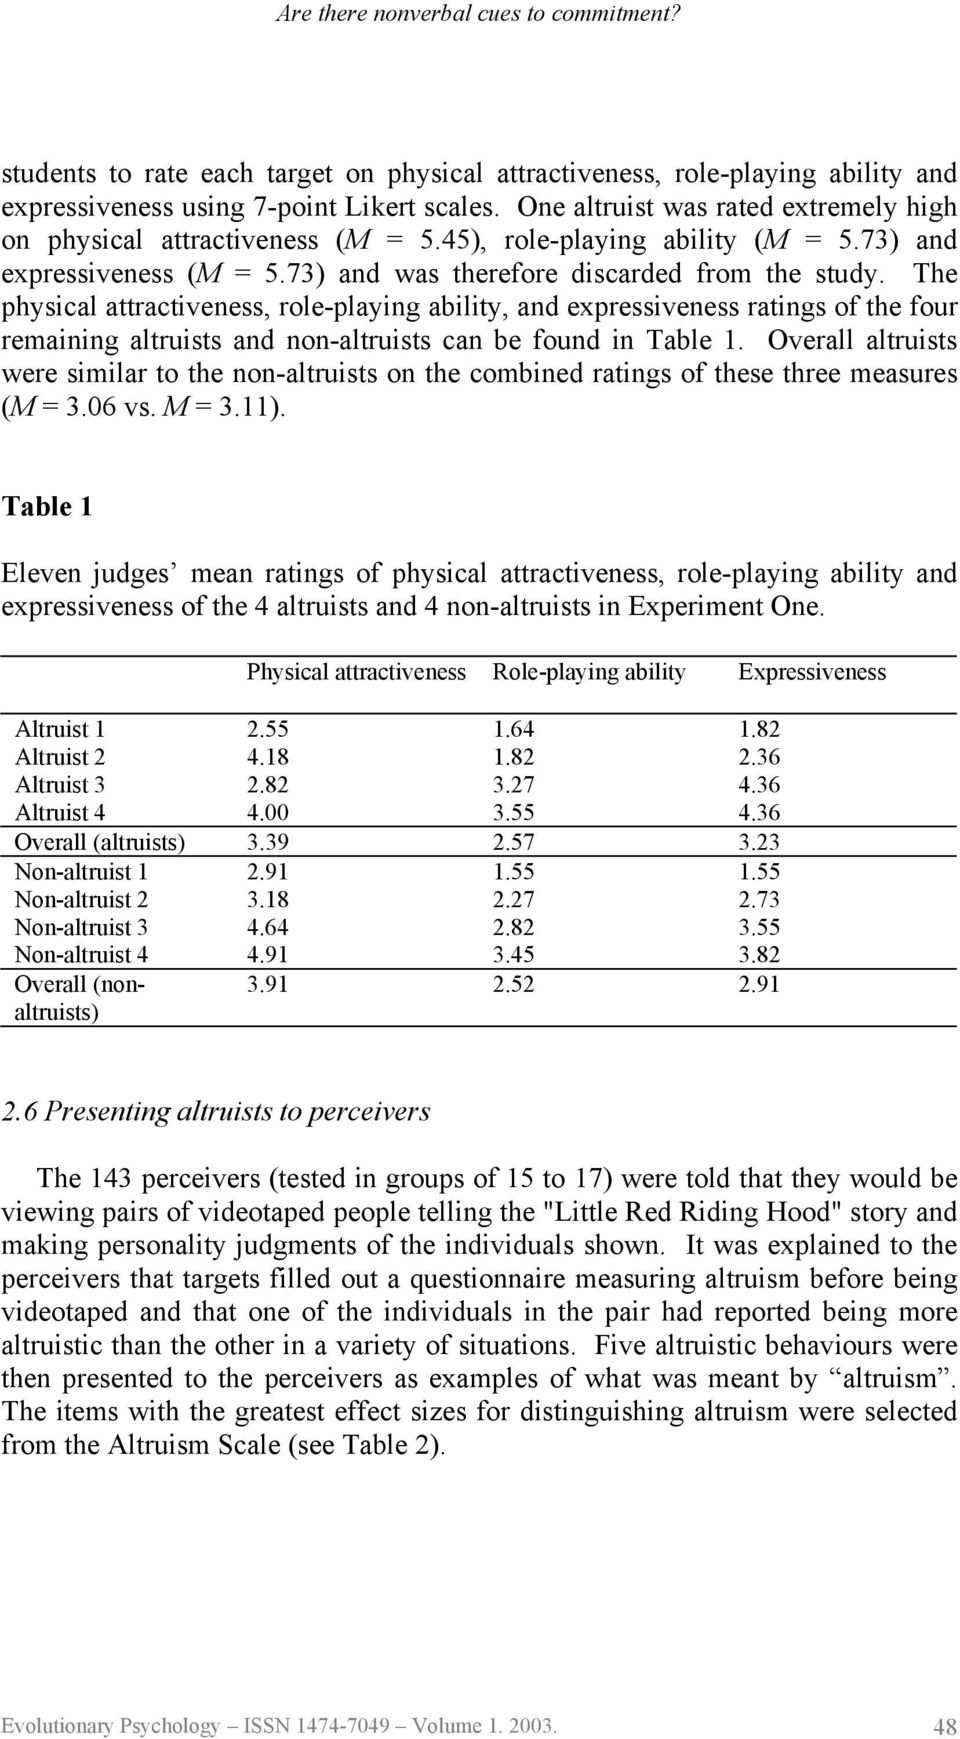 The physical attractiveness, role-playing ability, and expressiveness ratings of the four remaining altruists and non-altruists can be found in Table 1.